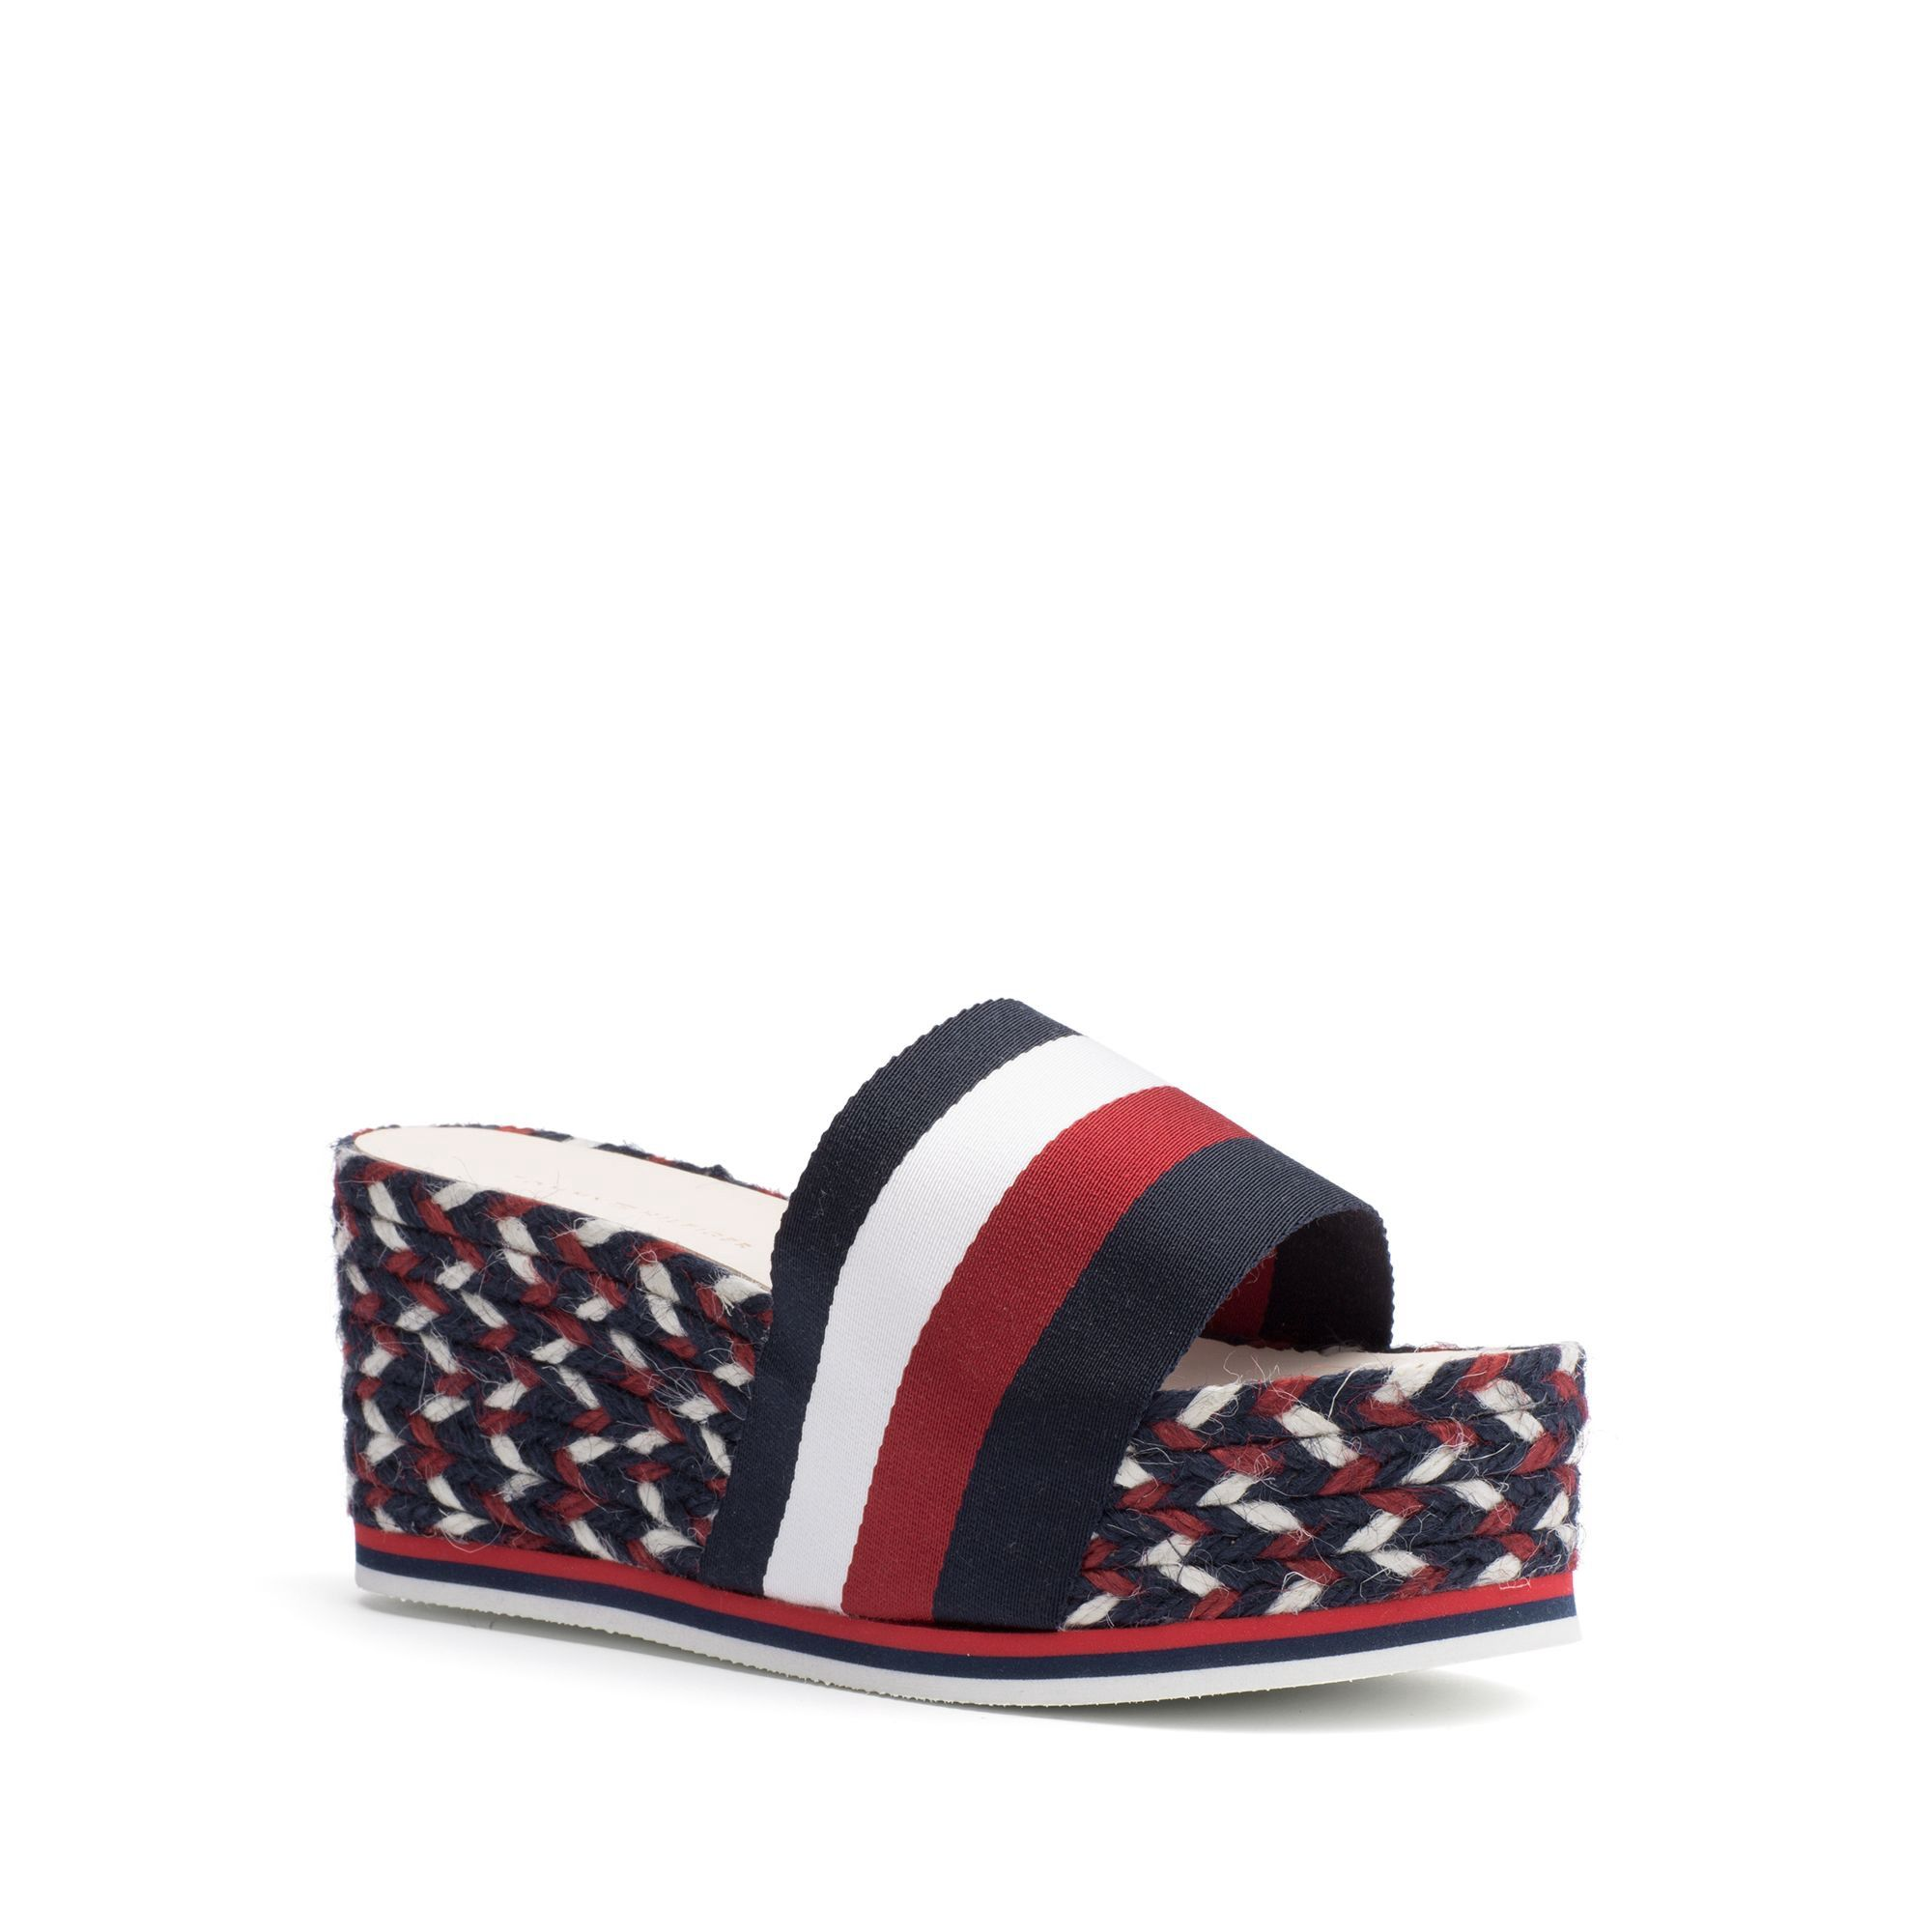 a09308fc137f9 TOMMY HILFIGER ICON ESPADRILLE WEDGE - CORPORATE MULTI.  tommyhilfiger   shoes